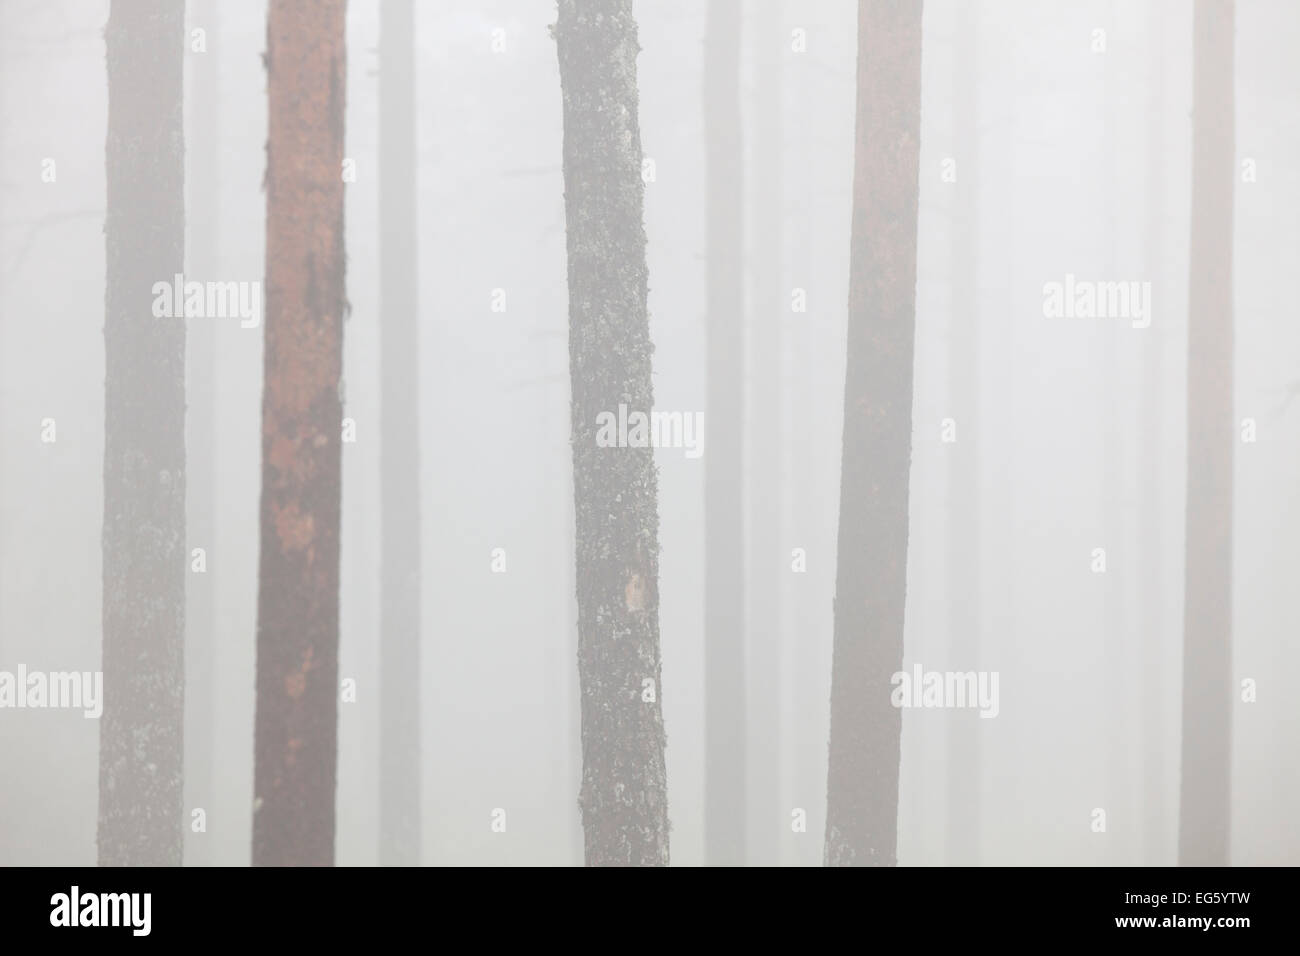 Scots Pine (Pinus sylvestris), tree trunks in coniferous forest in the mist - Stock Image